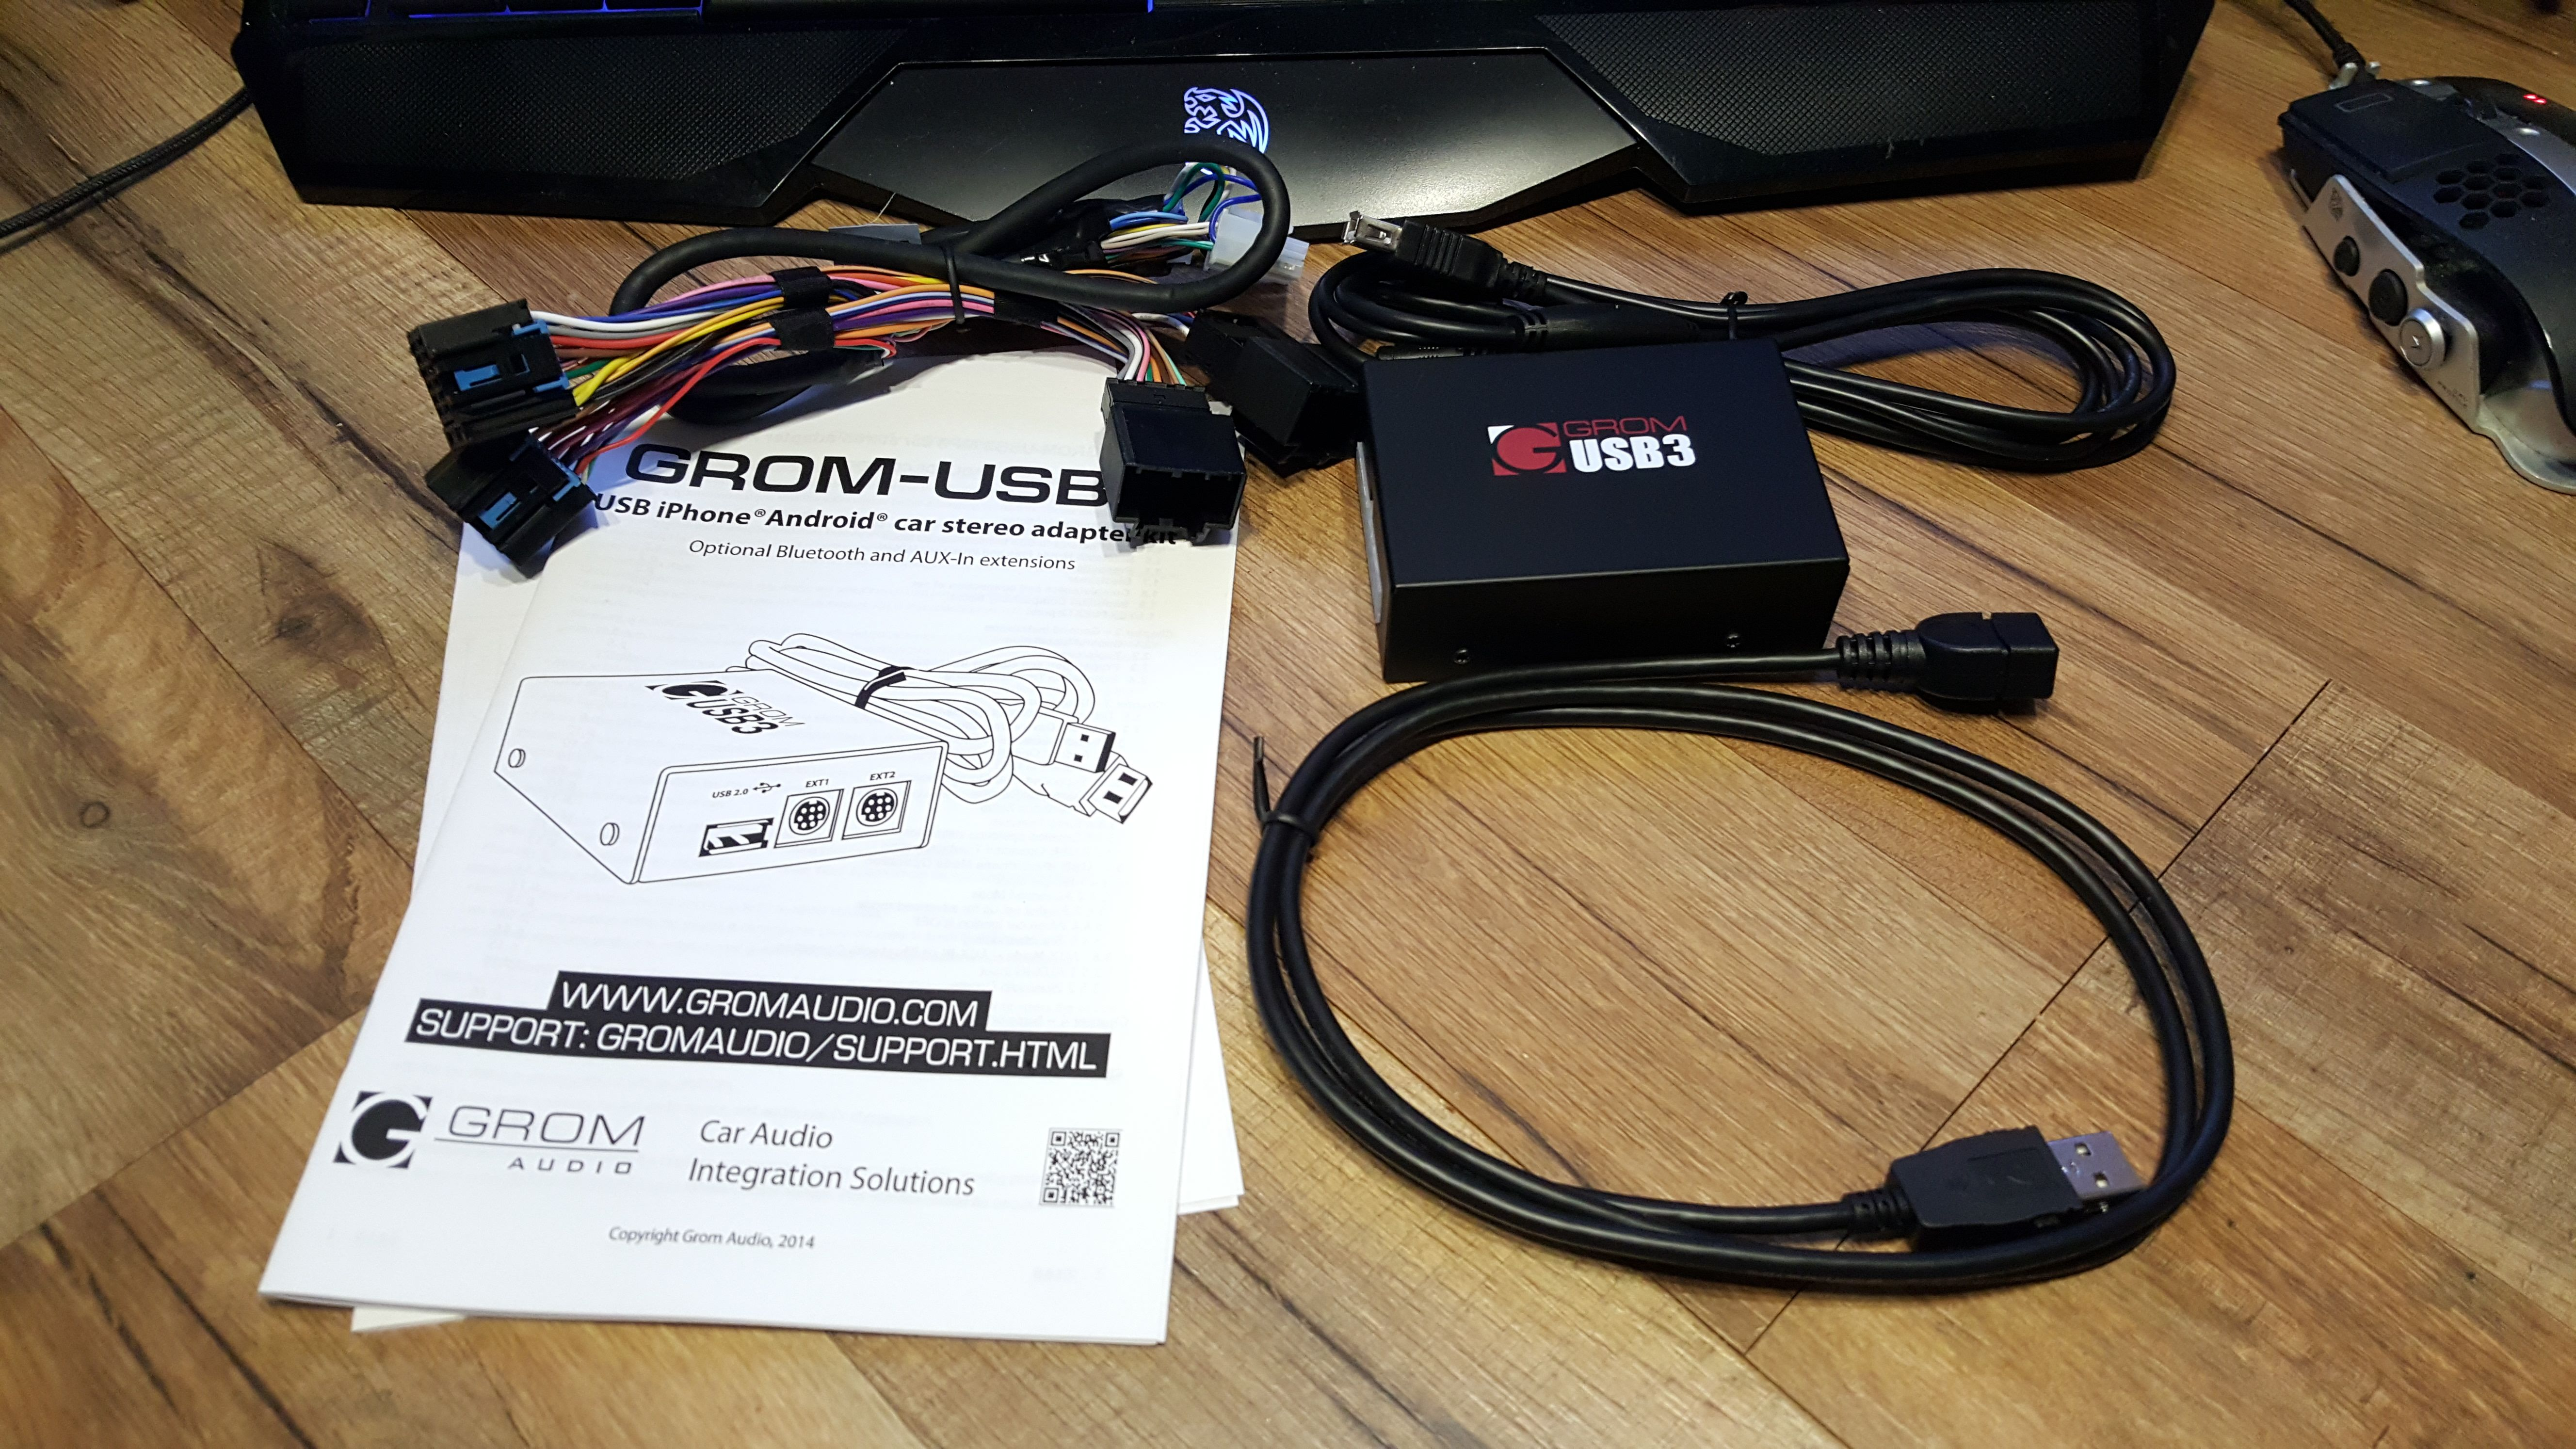 Grom usb android bluetooth iphone car kit gets reviewed by http cerebral